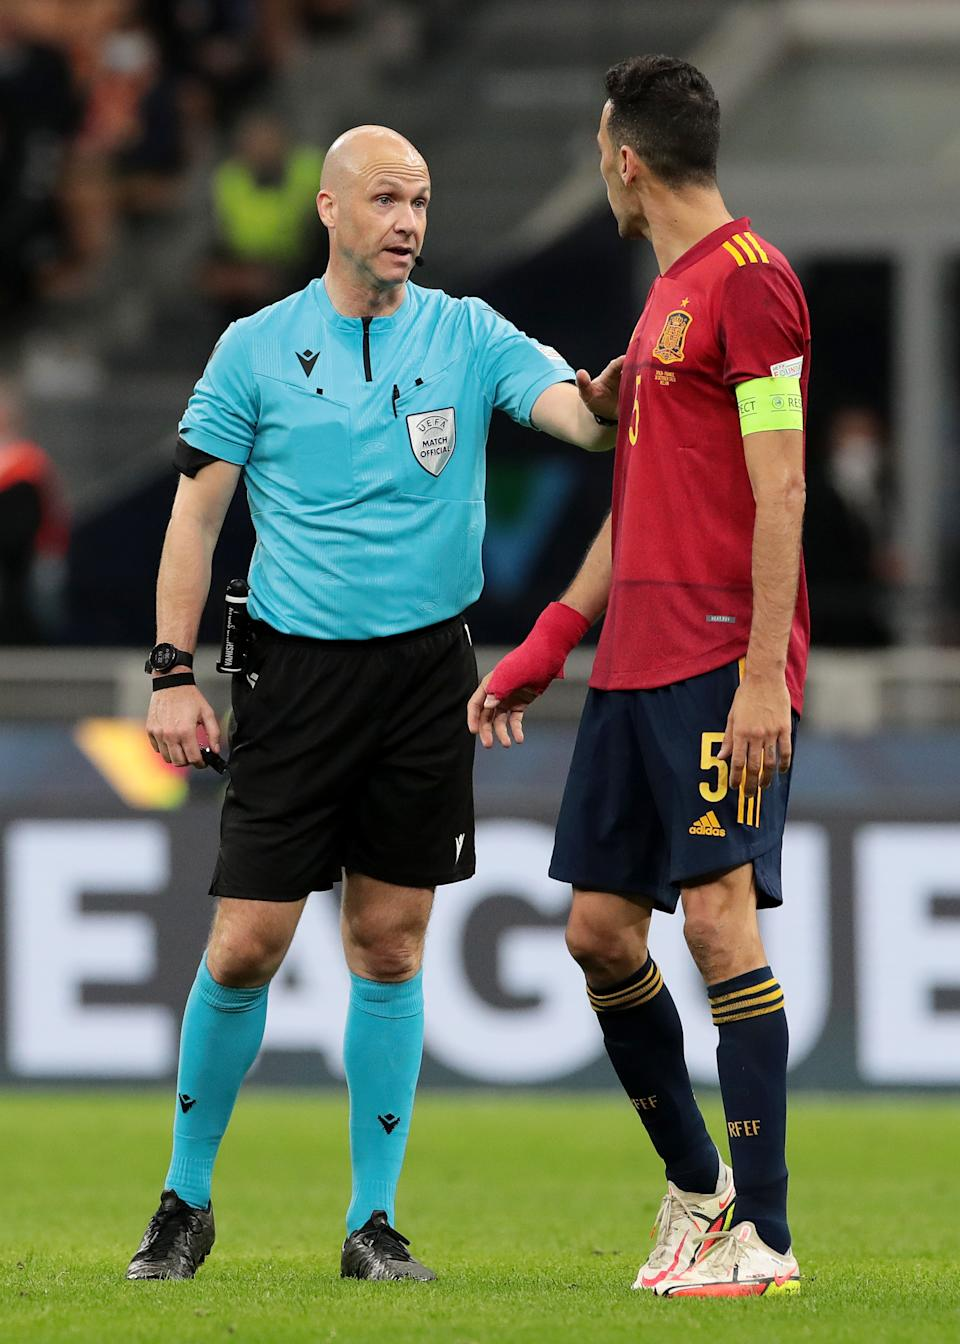 MILAN, ITALY - OCTOBER 10: Match referee, Anthony Taylor speaks with Sergio Busquets of Spain during the UEFA Nations League 2021 Final match between Spain and France at San Siro Stadium on October 10, 2021 in Milan, Italy. (Photo by Emilio Andreoli - UEFA/UEFA via Getty Images)